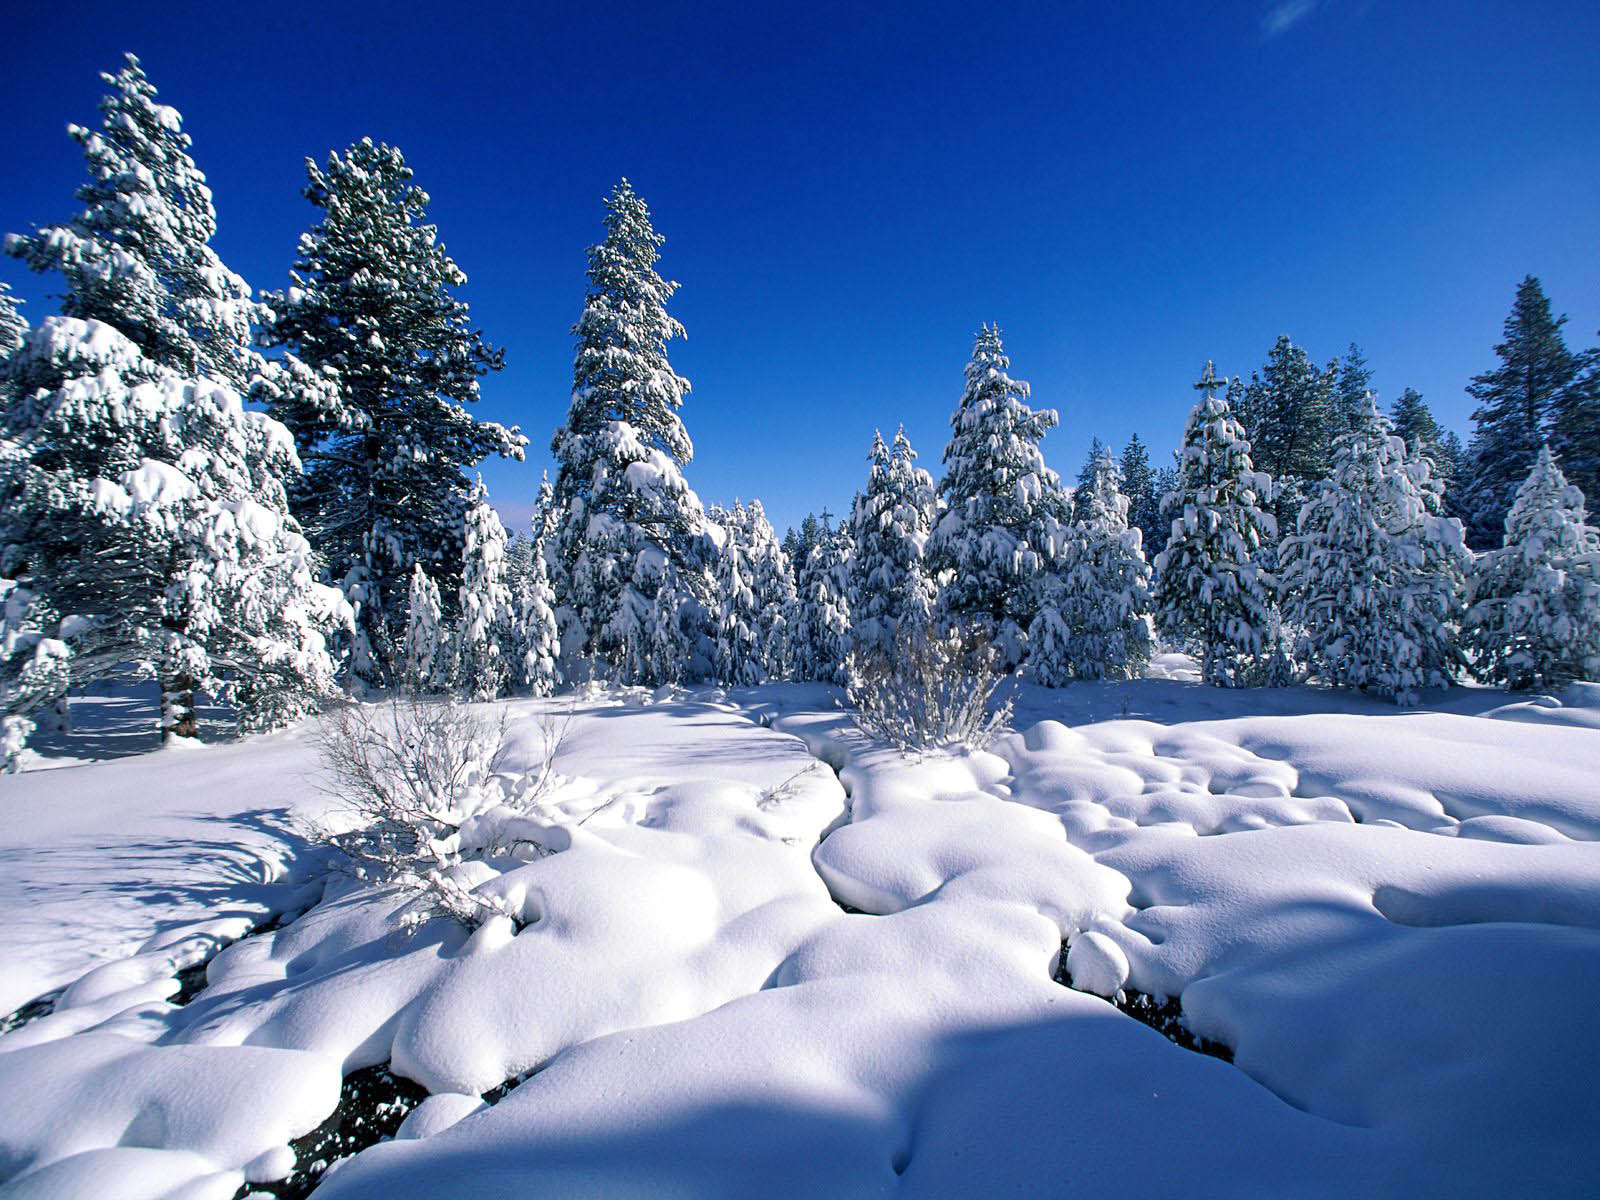 Gallery Mangklex Snow Wallpapers Hot 2013